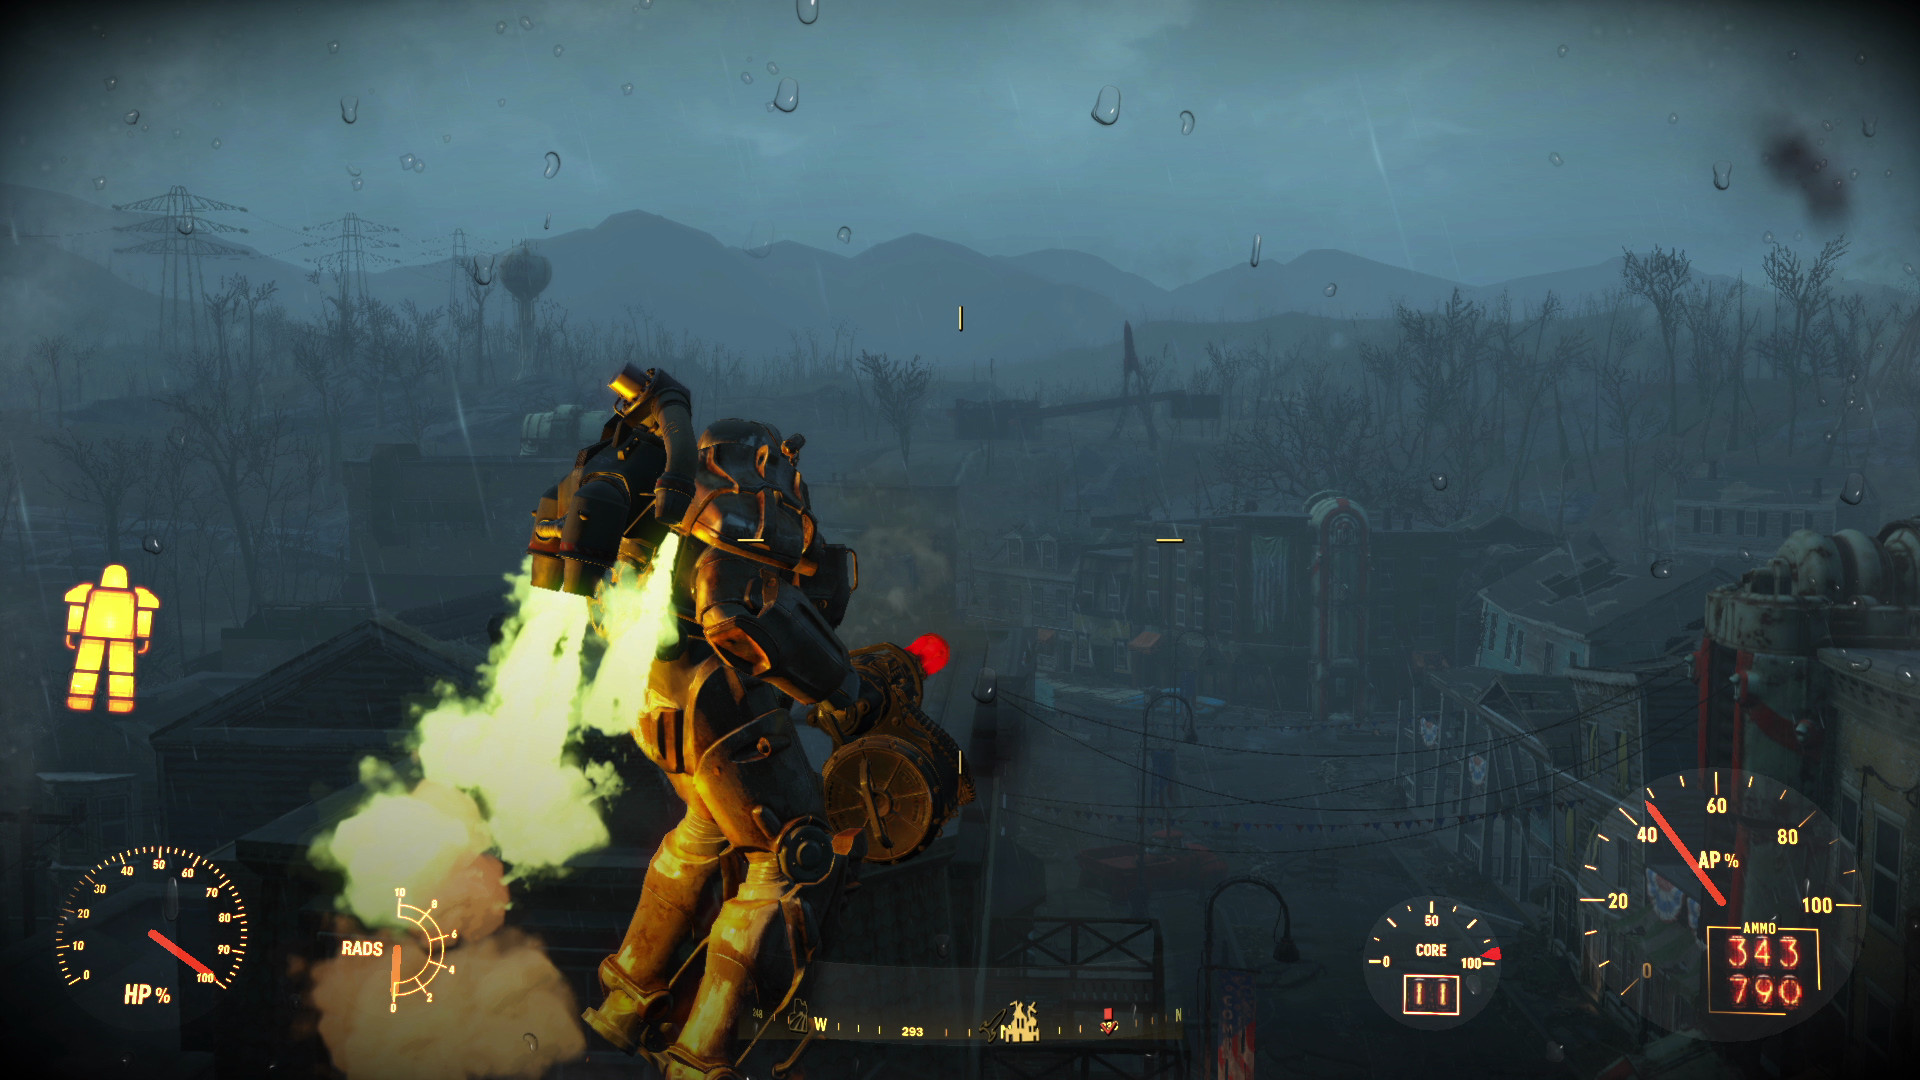 Download How To Download Fallout 4 Dlc Ps4 Pictures